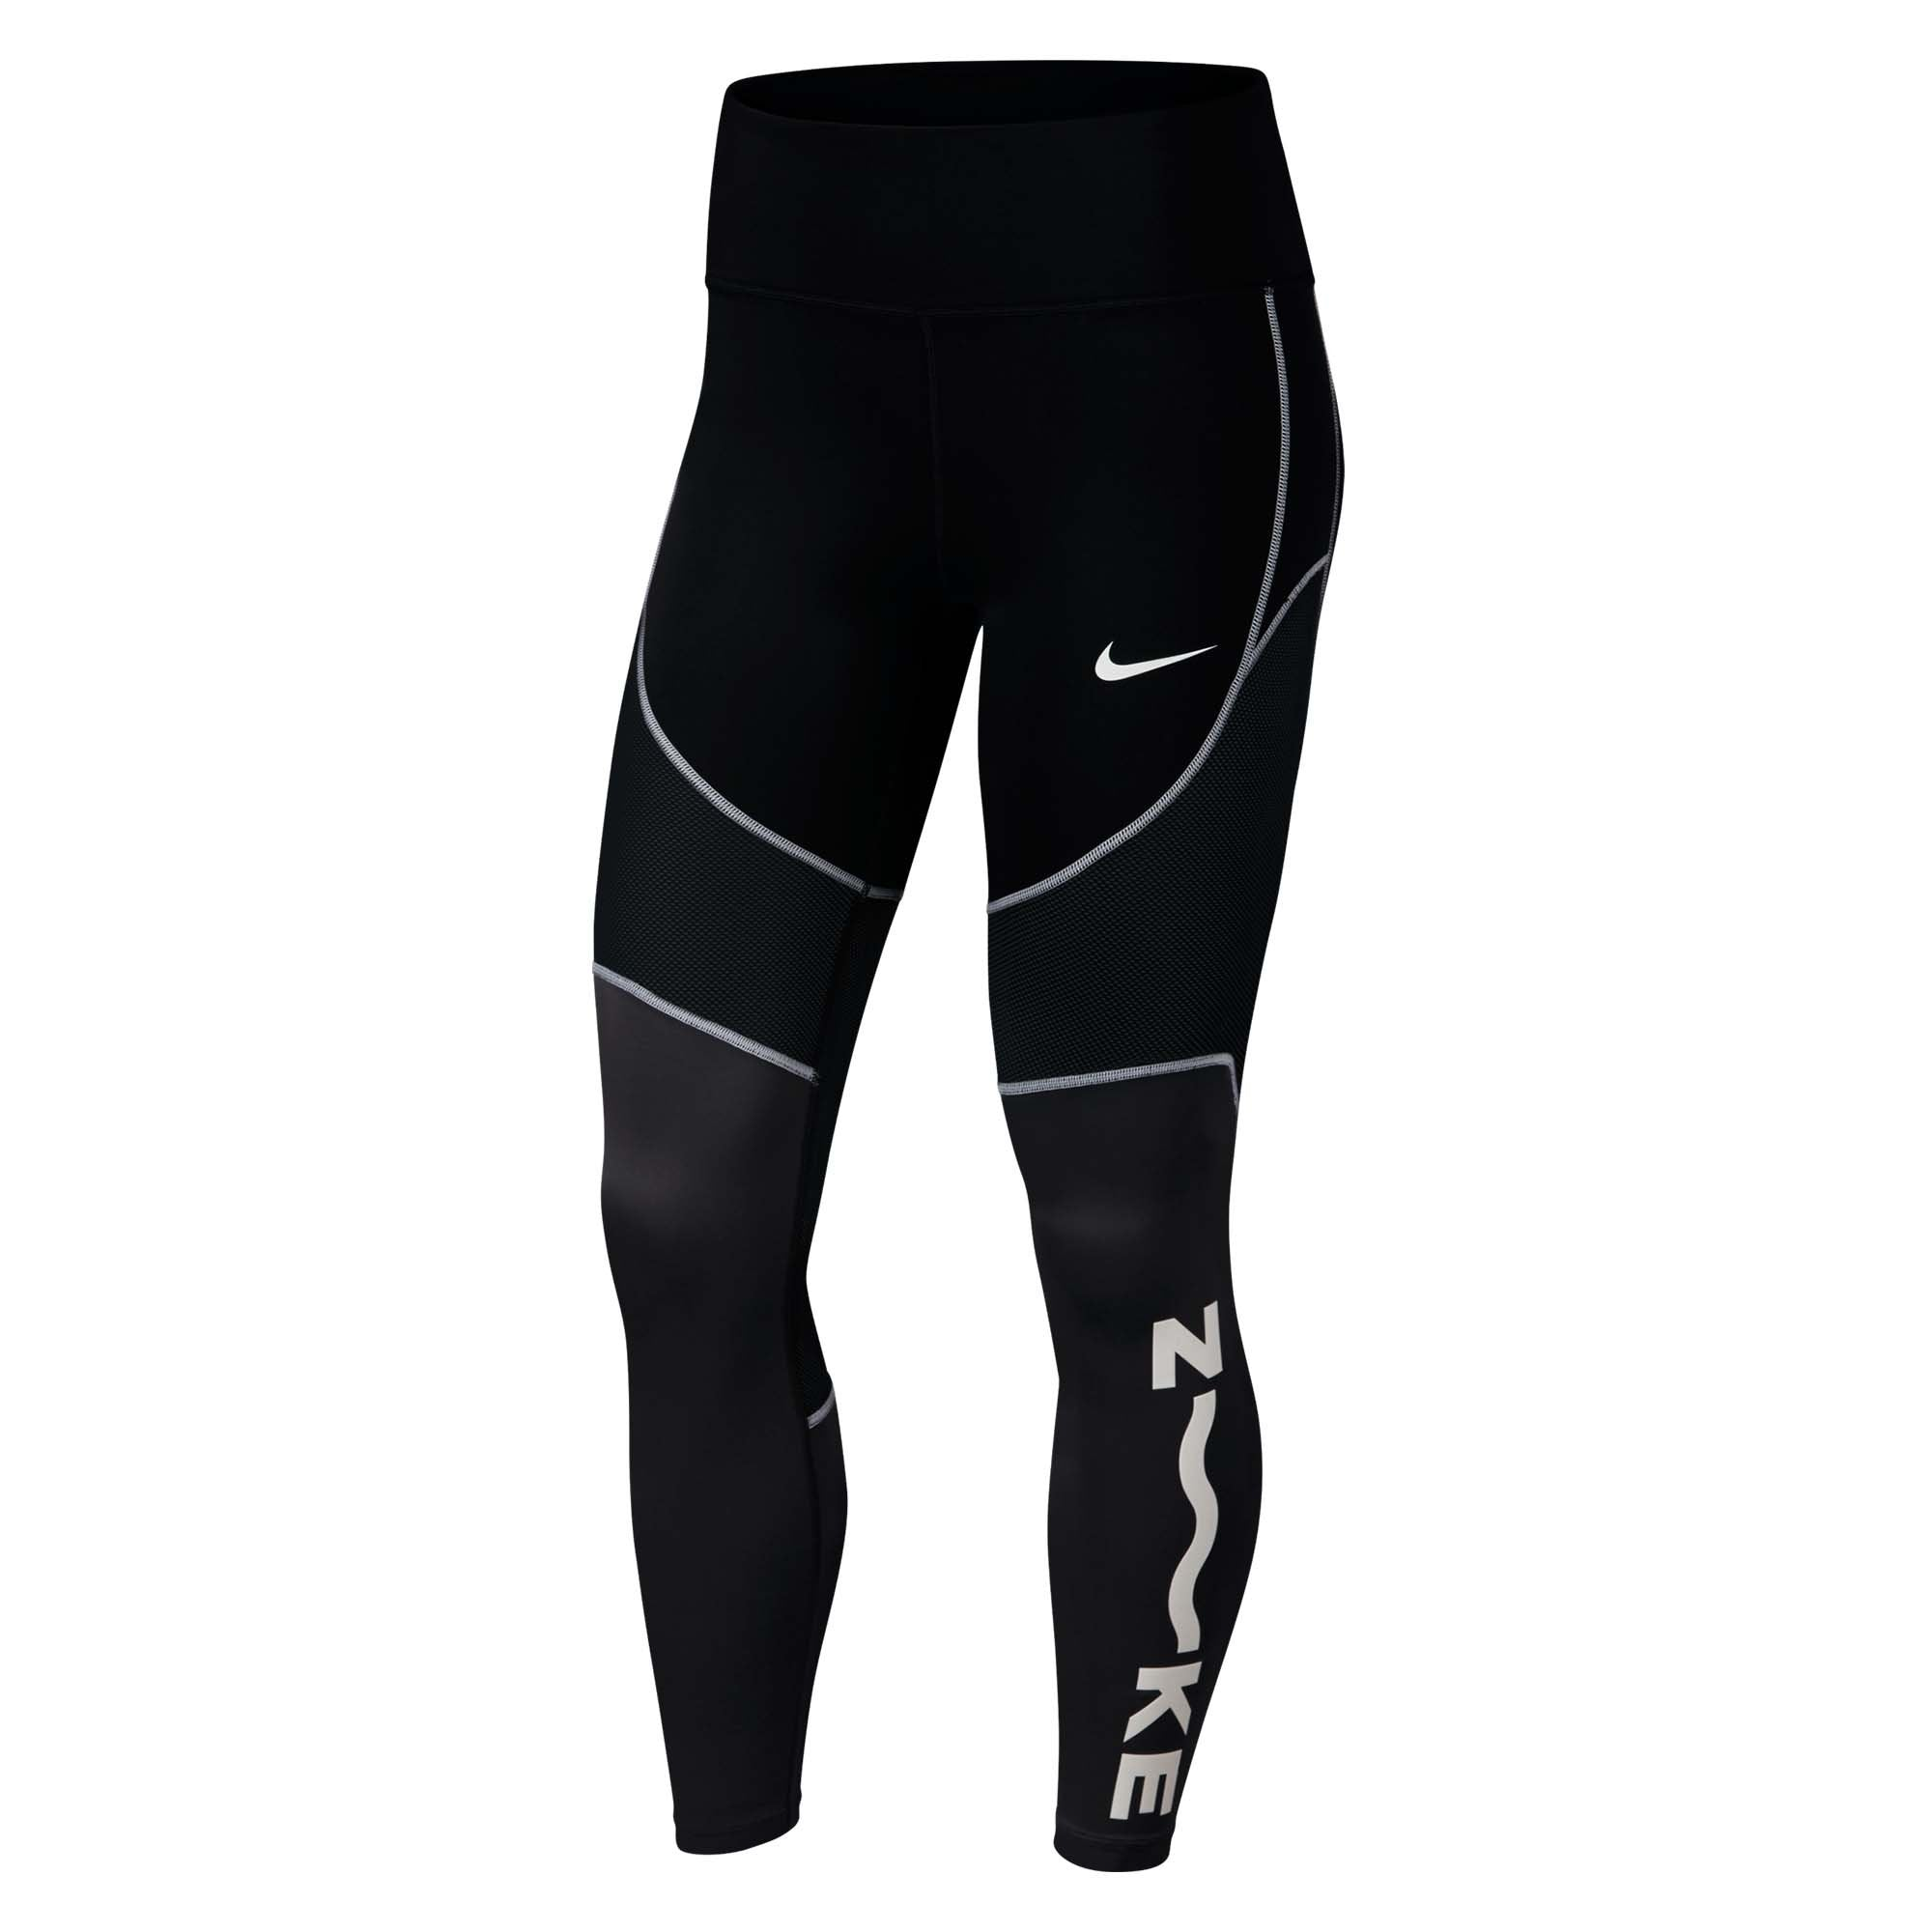 74525e1ffa808 Buy Nike Women Solid 7/8 One Tights Online in Singapore | Royal Sporting  House